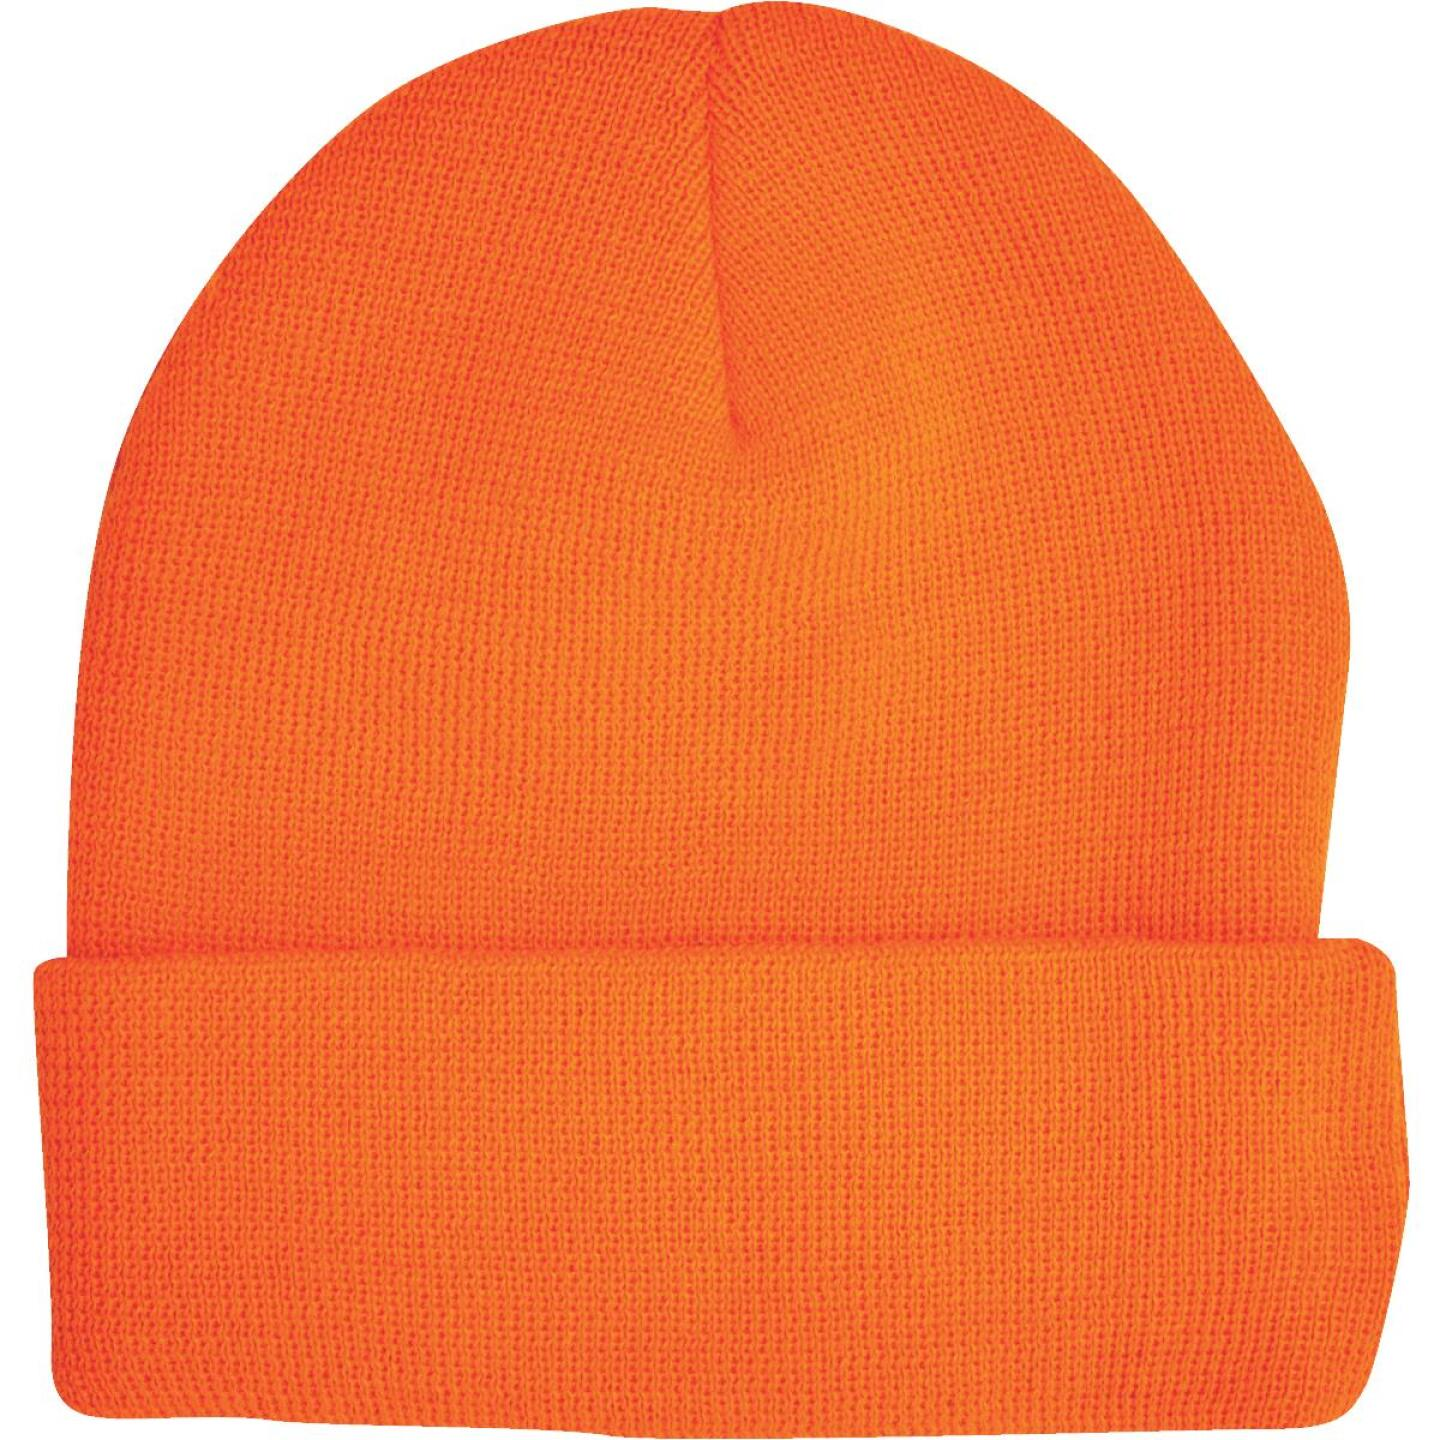 Outdoor Cap Blaze Orange Cuffed Sock Cap Image 3